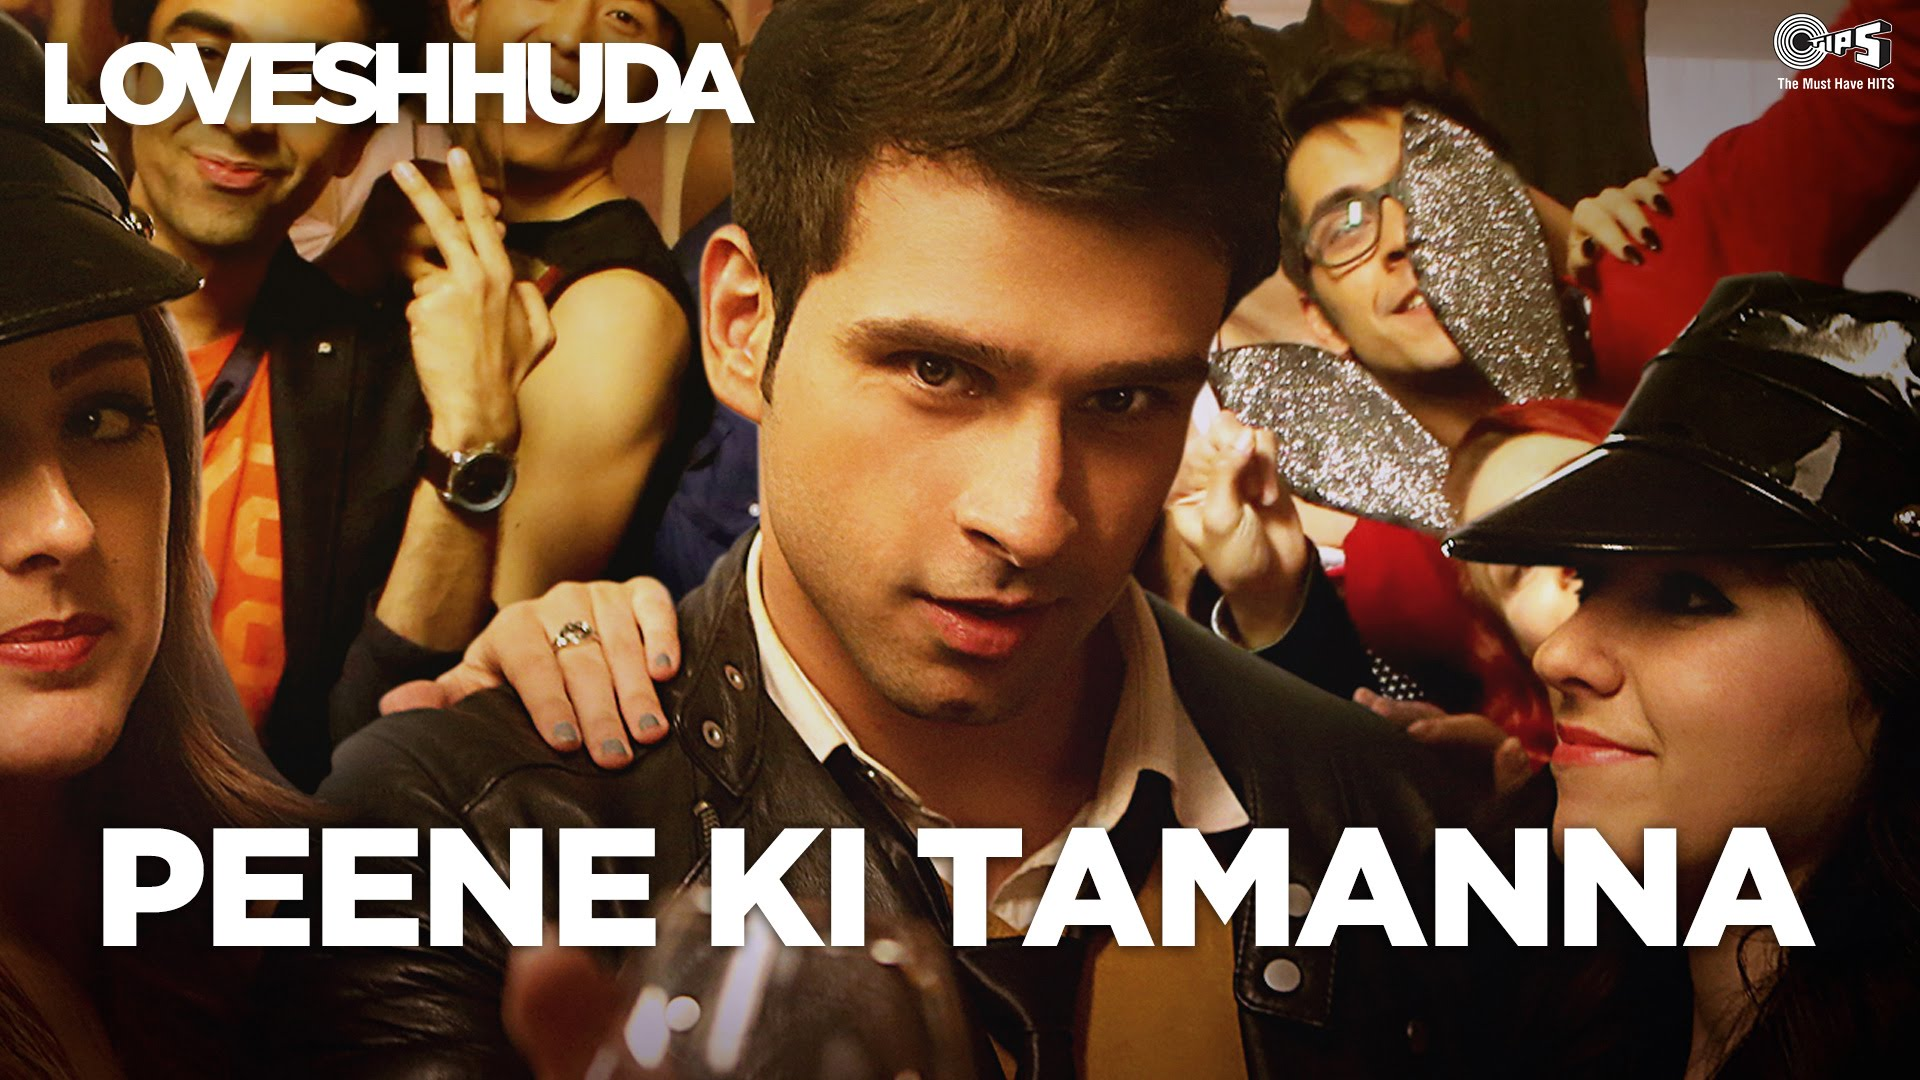 Peene Ki Tamanna from 'Loveshhuda' | Party Anthem of the Year